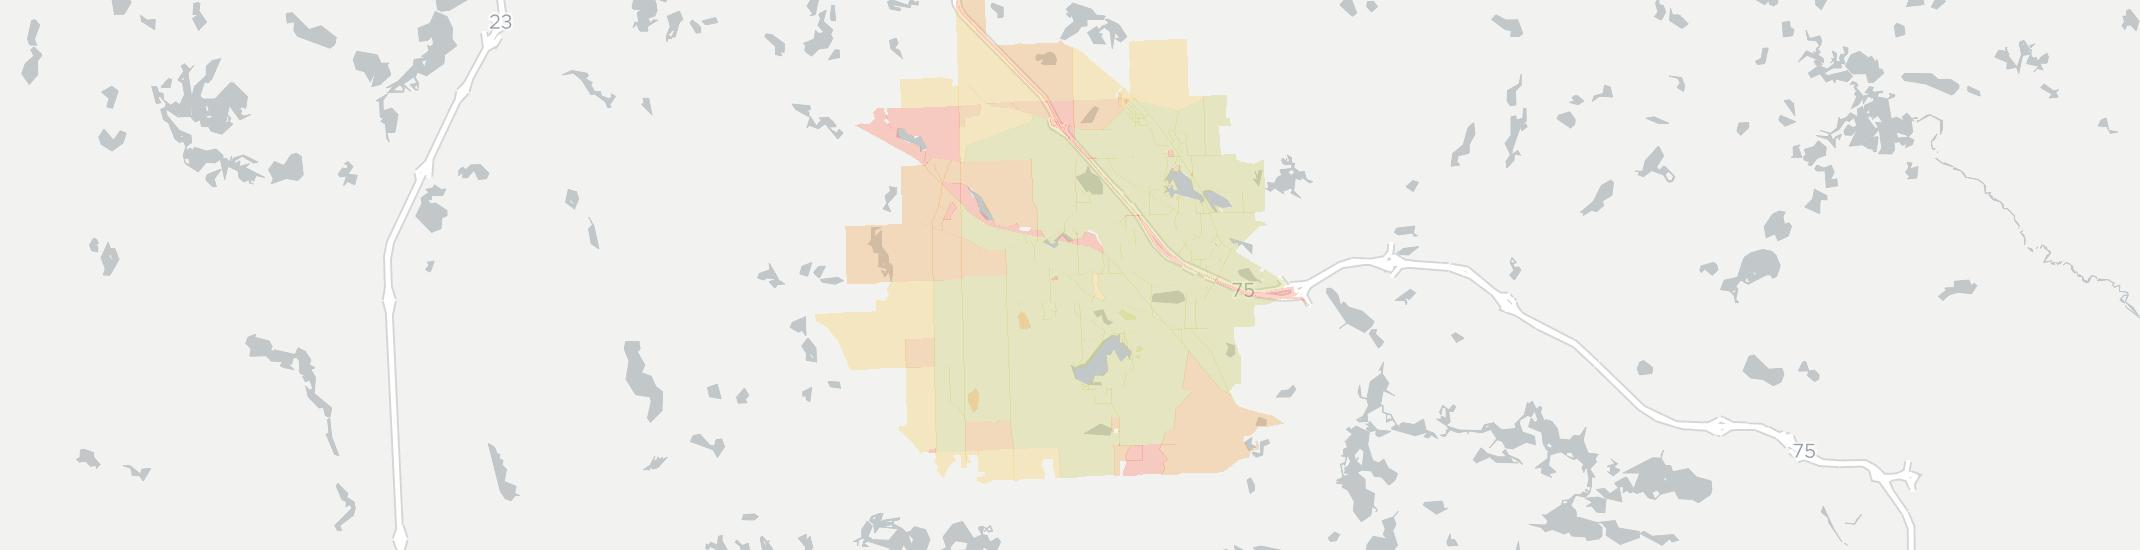 Davisburg Internet Competition Map. Click for interactive map.